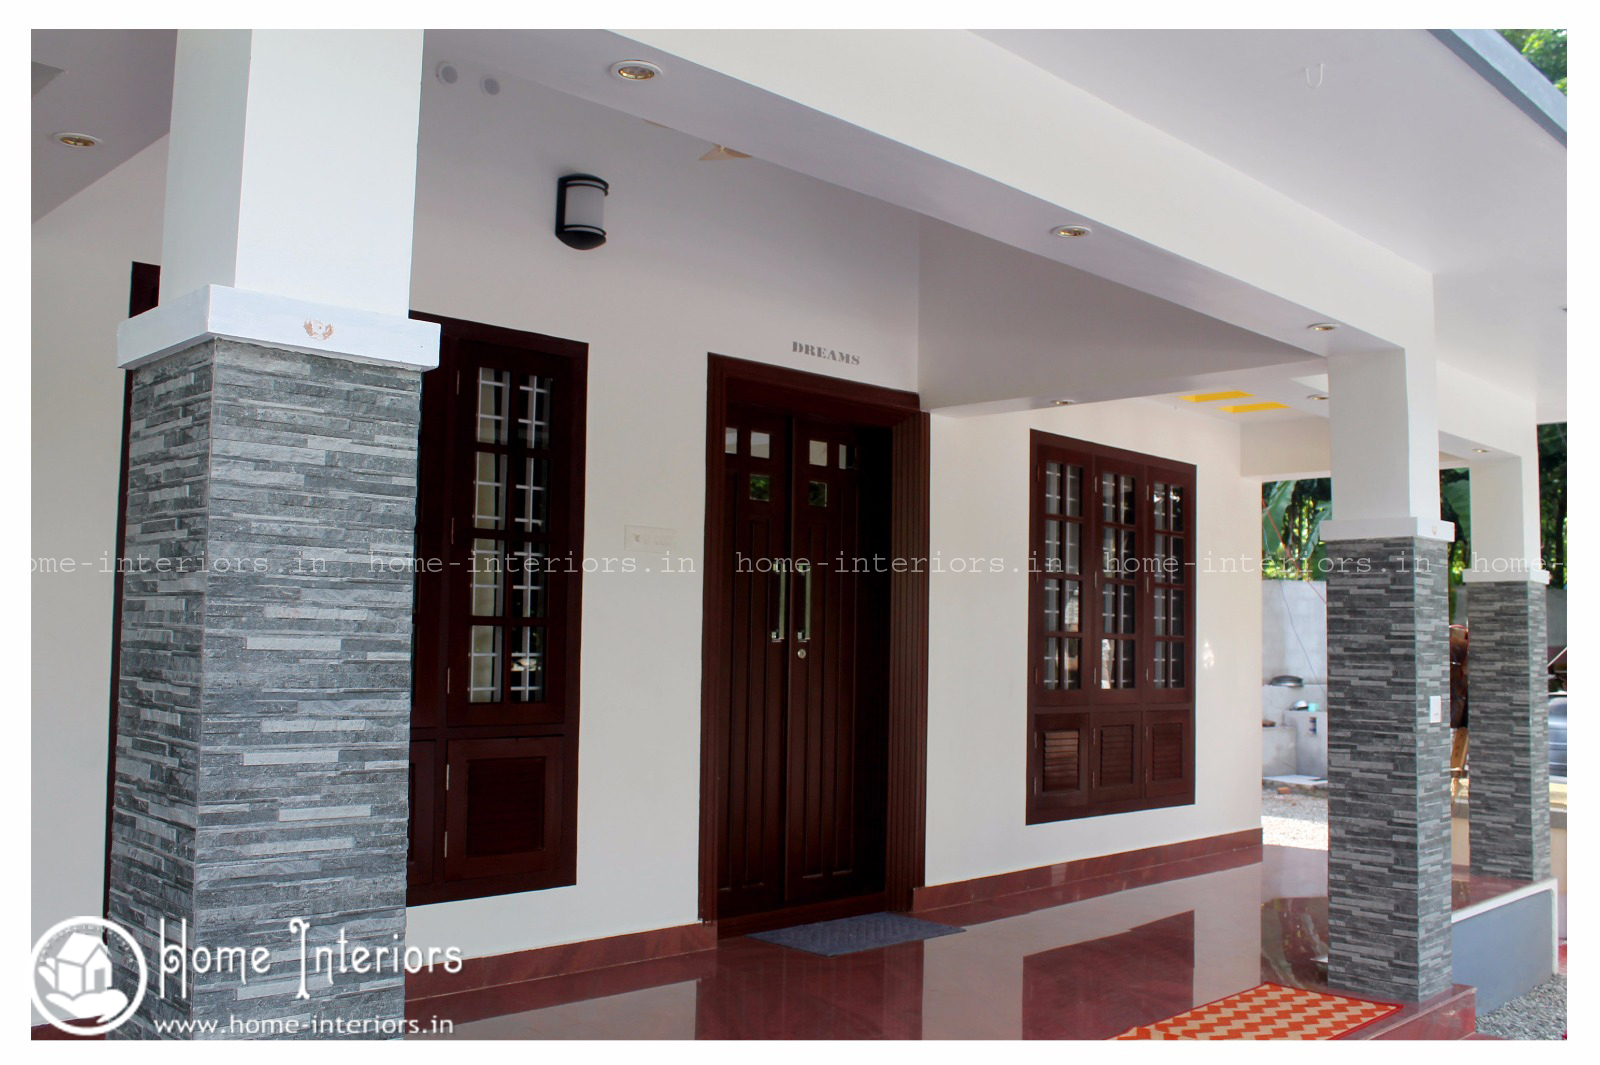 2350 sq ft double floor contemporary home interior designs for Kerala model interior designs